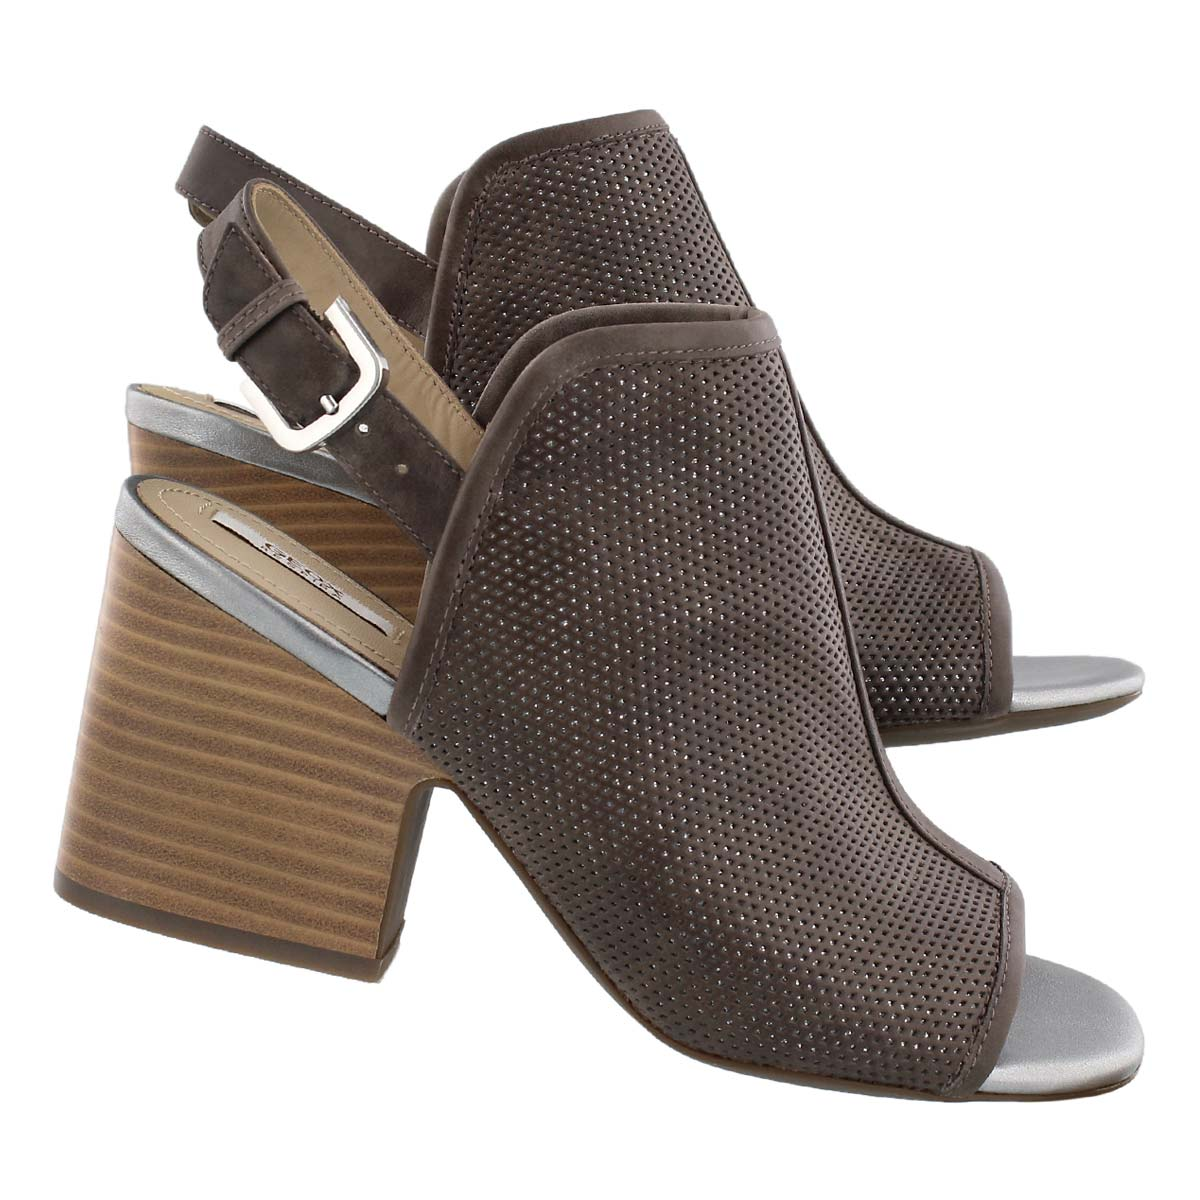 Lds Marilyse C taupe/silver dress sandal